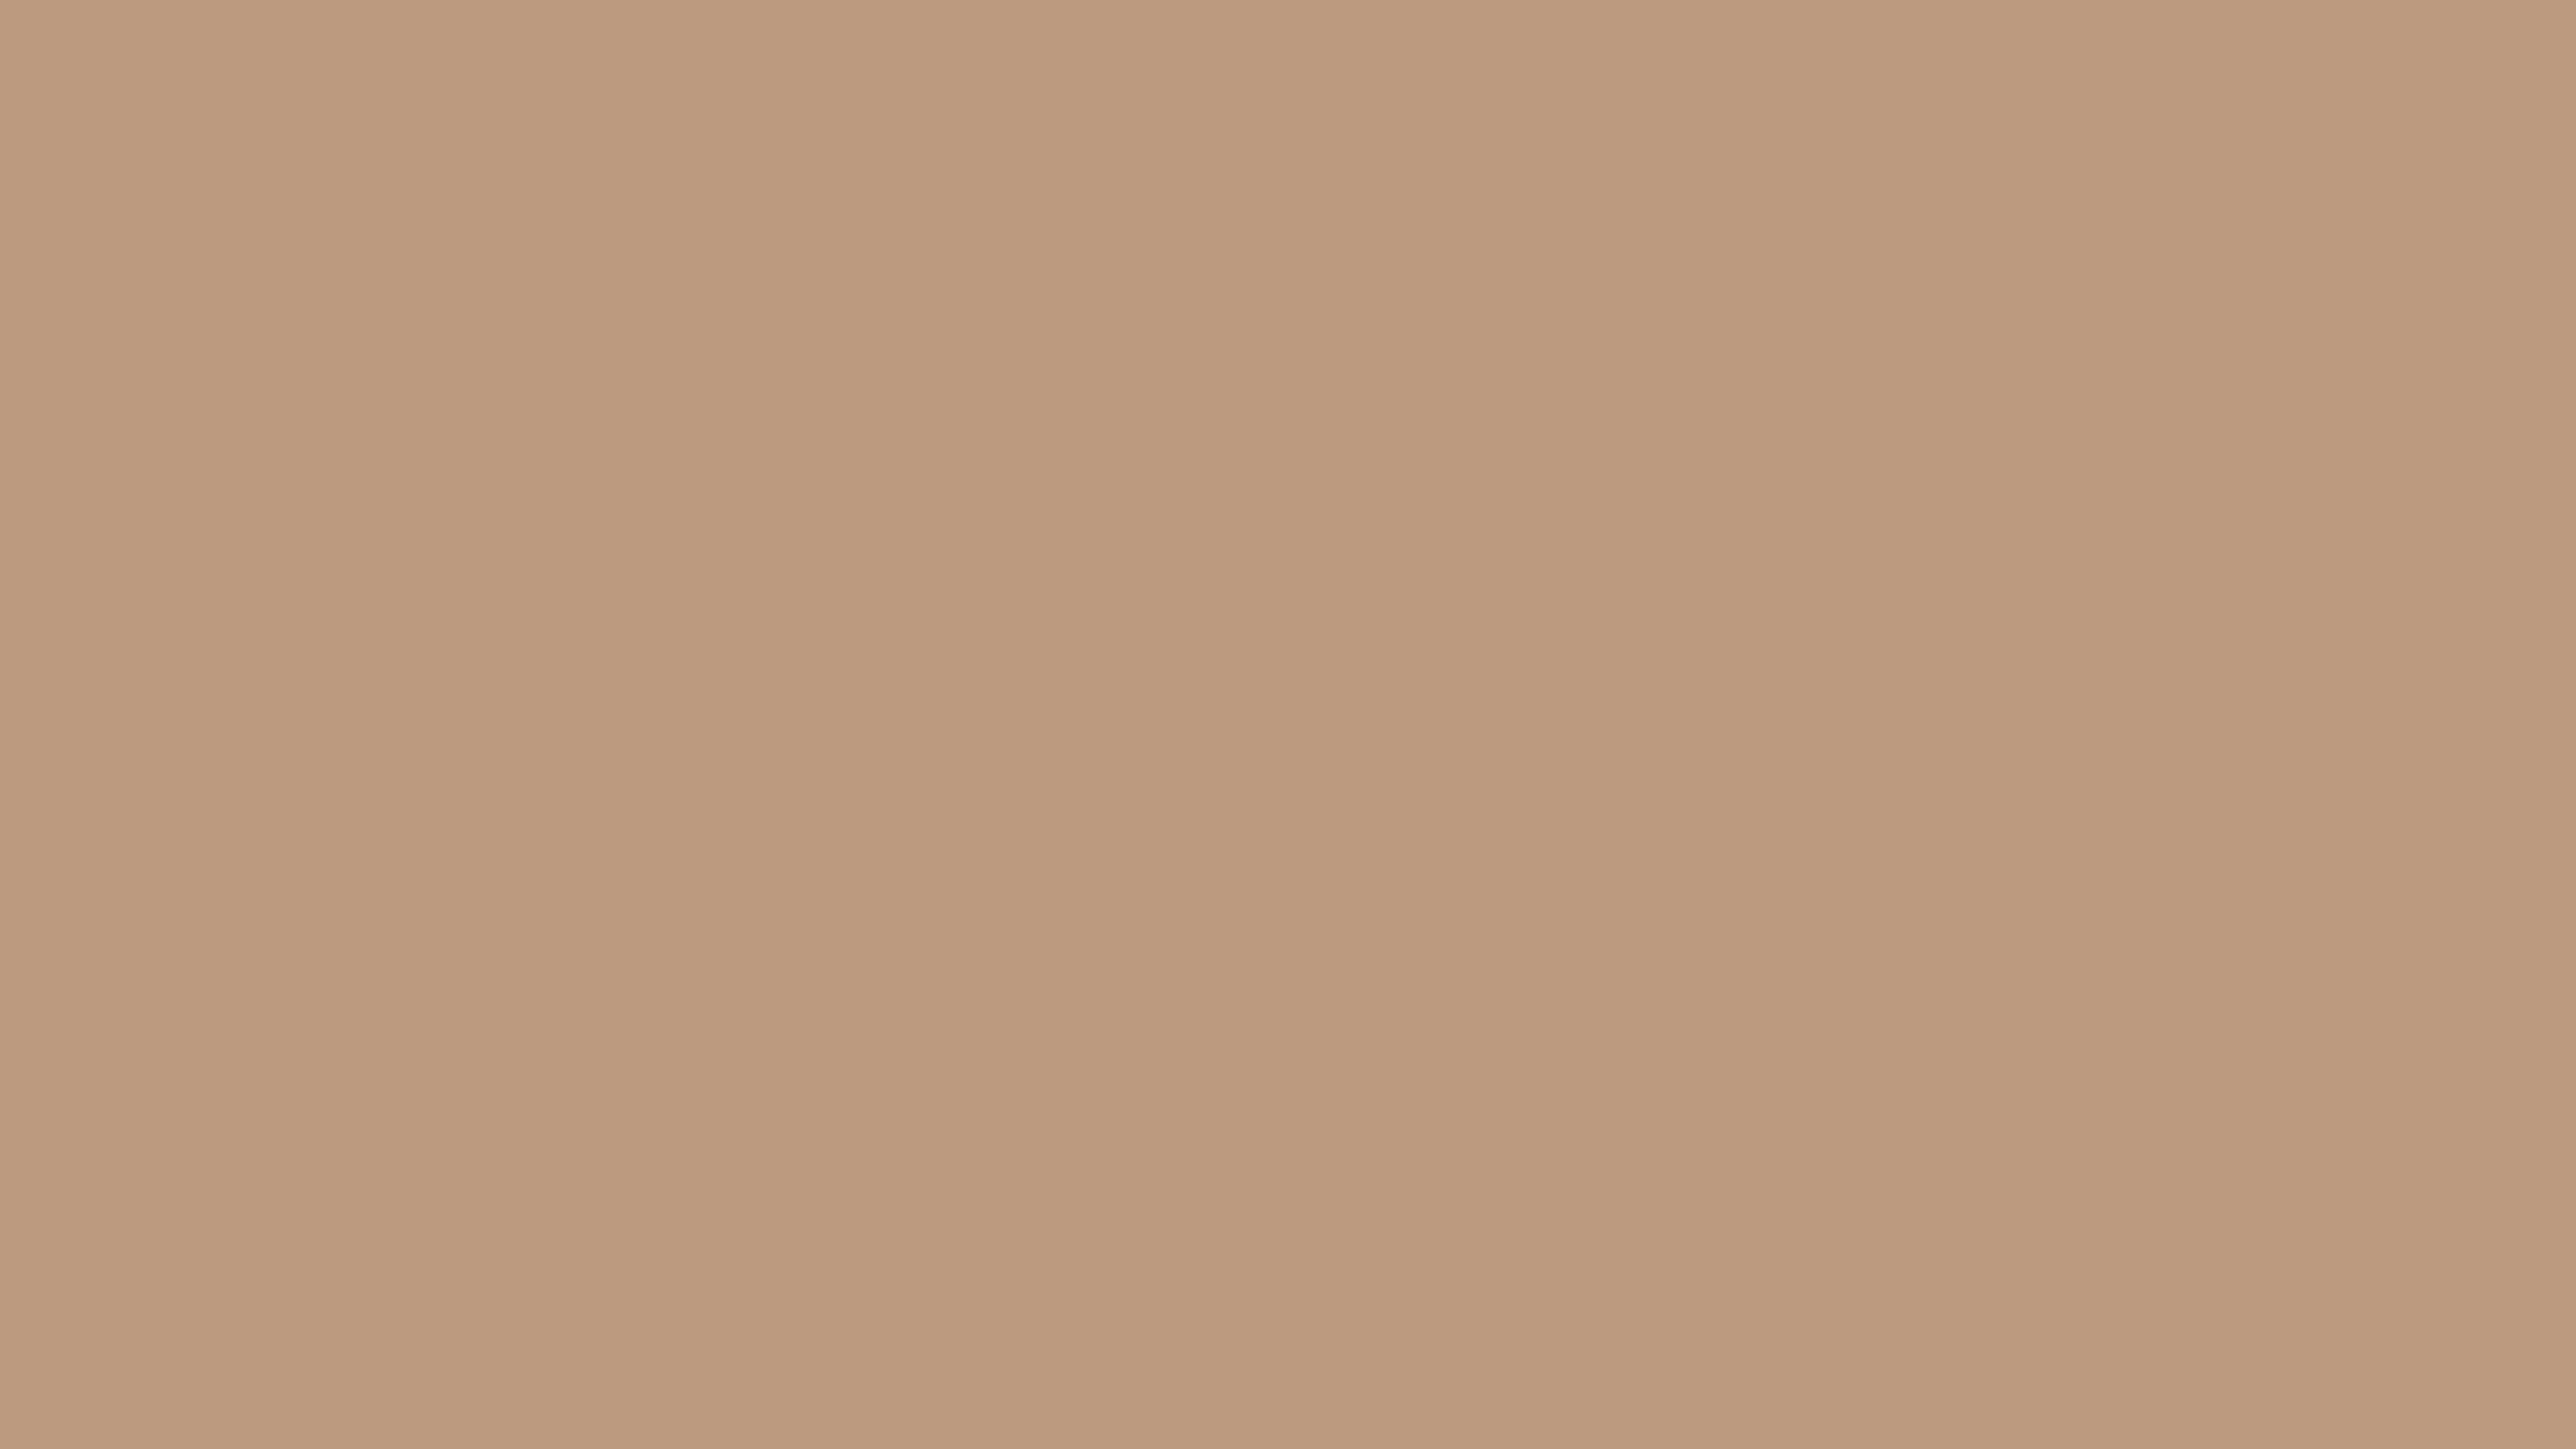 5120x2880 Pale Taupe Solid Color Background